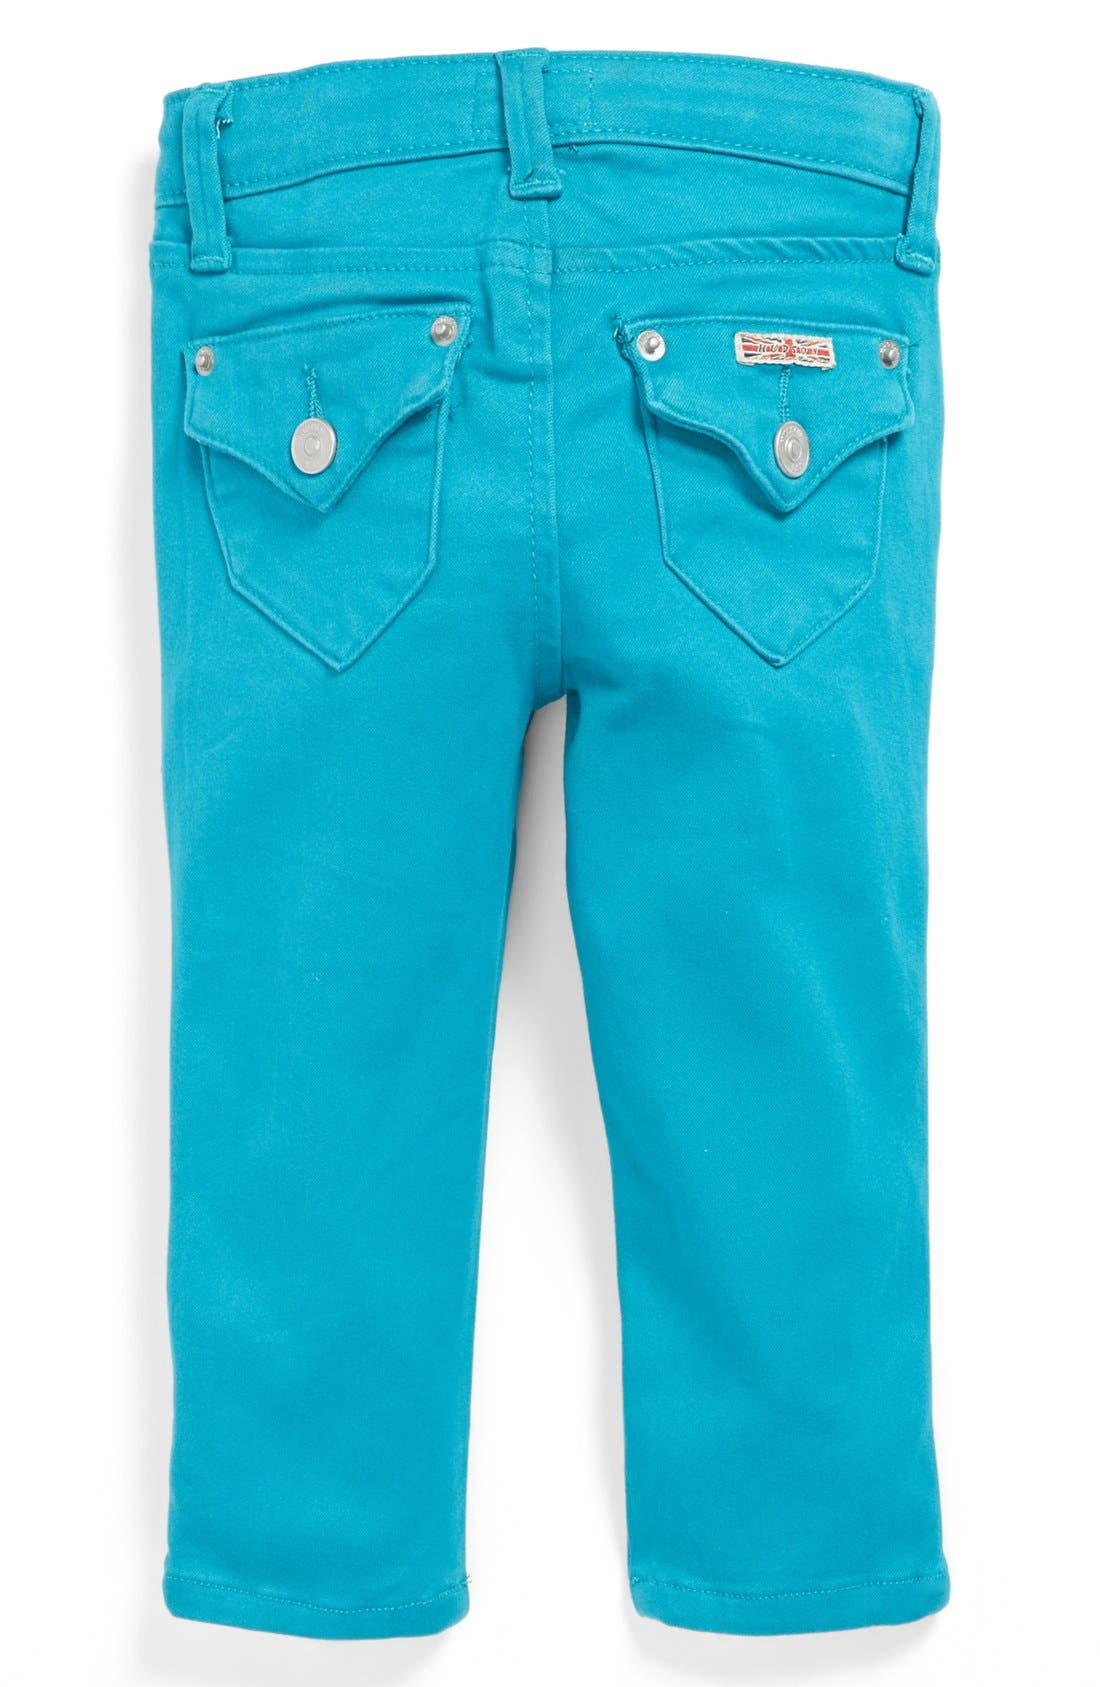 Alternate Image 1 Selected - Hudson Kids 'Collin' Skinny Jeans (Baby Girls)